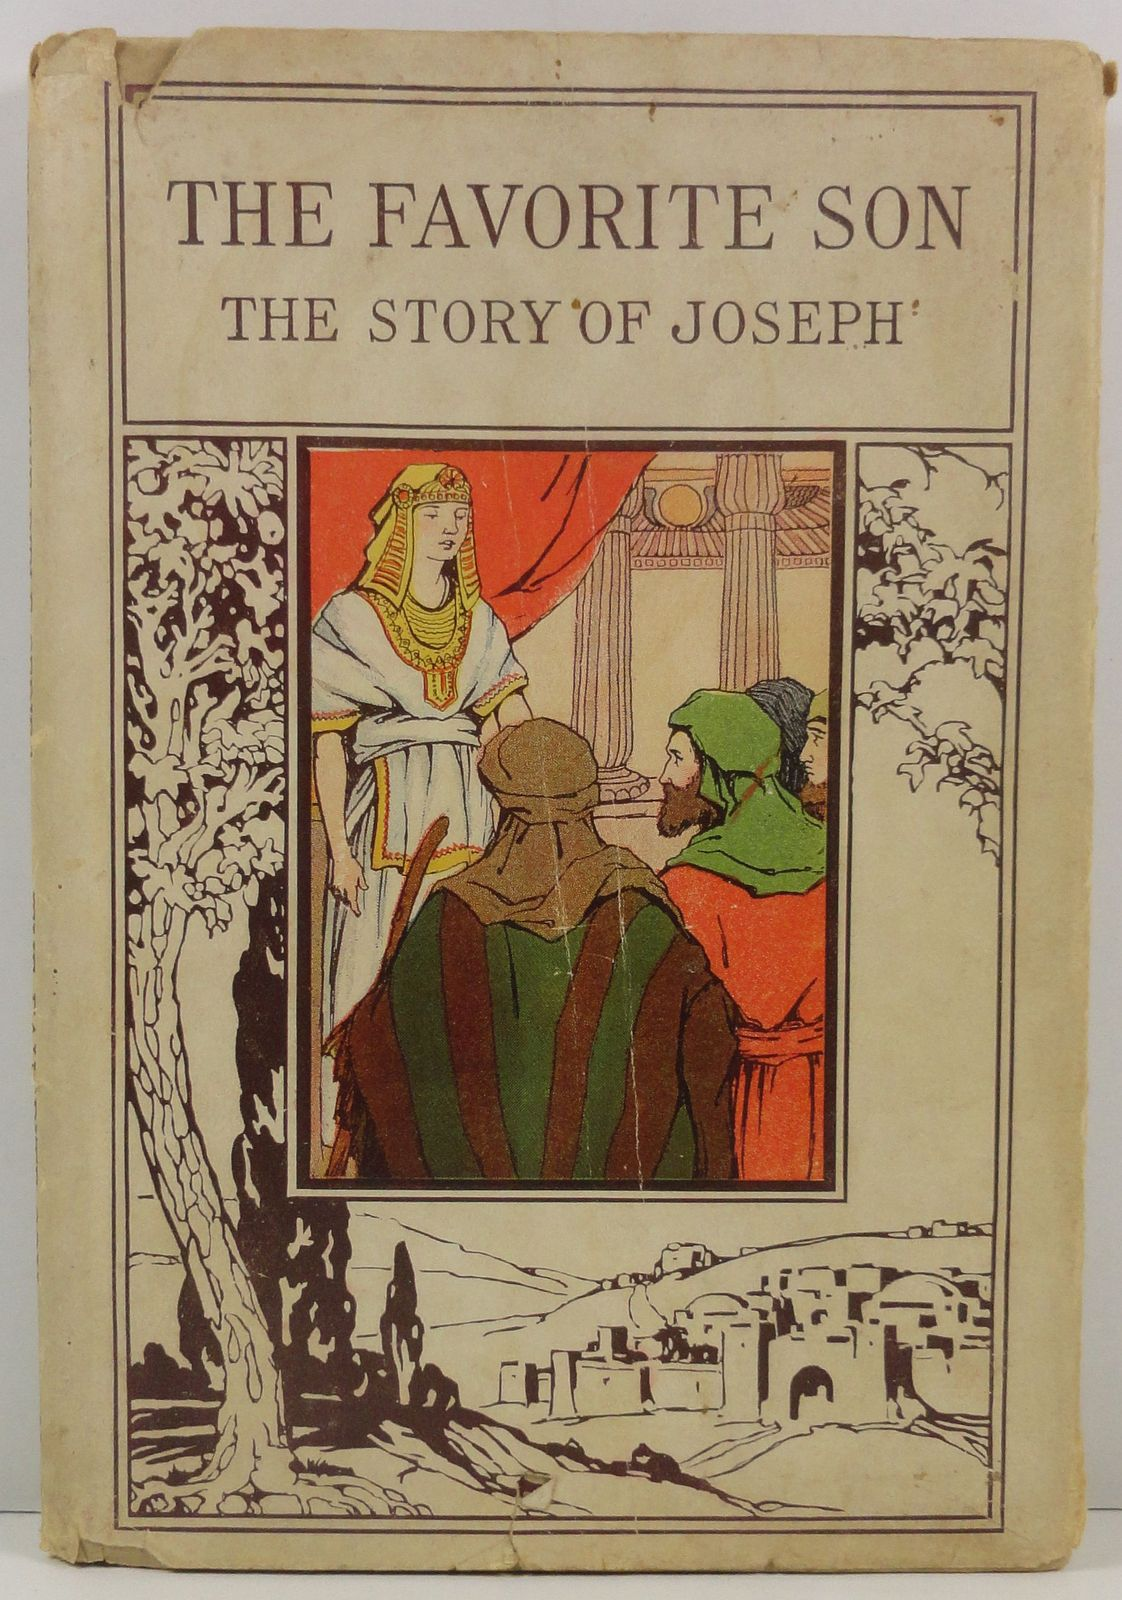 Primary image for The Favorite Son The Story of Joseph by J. H. Willard 1905